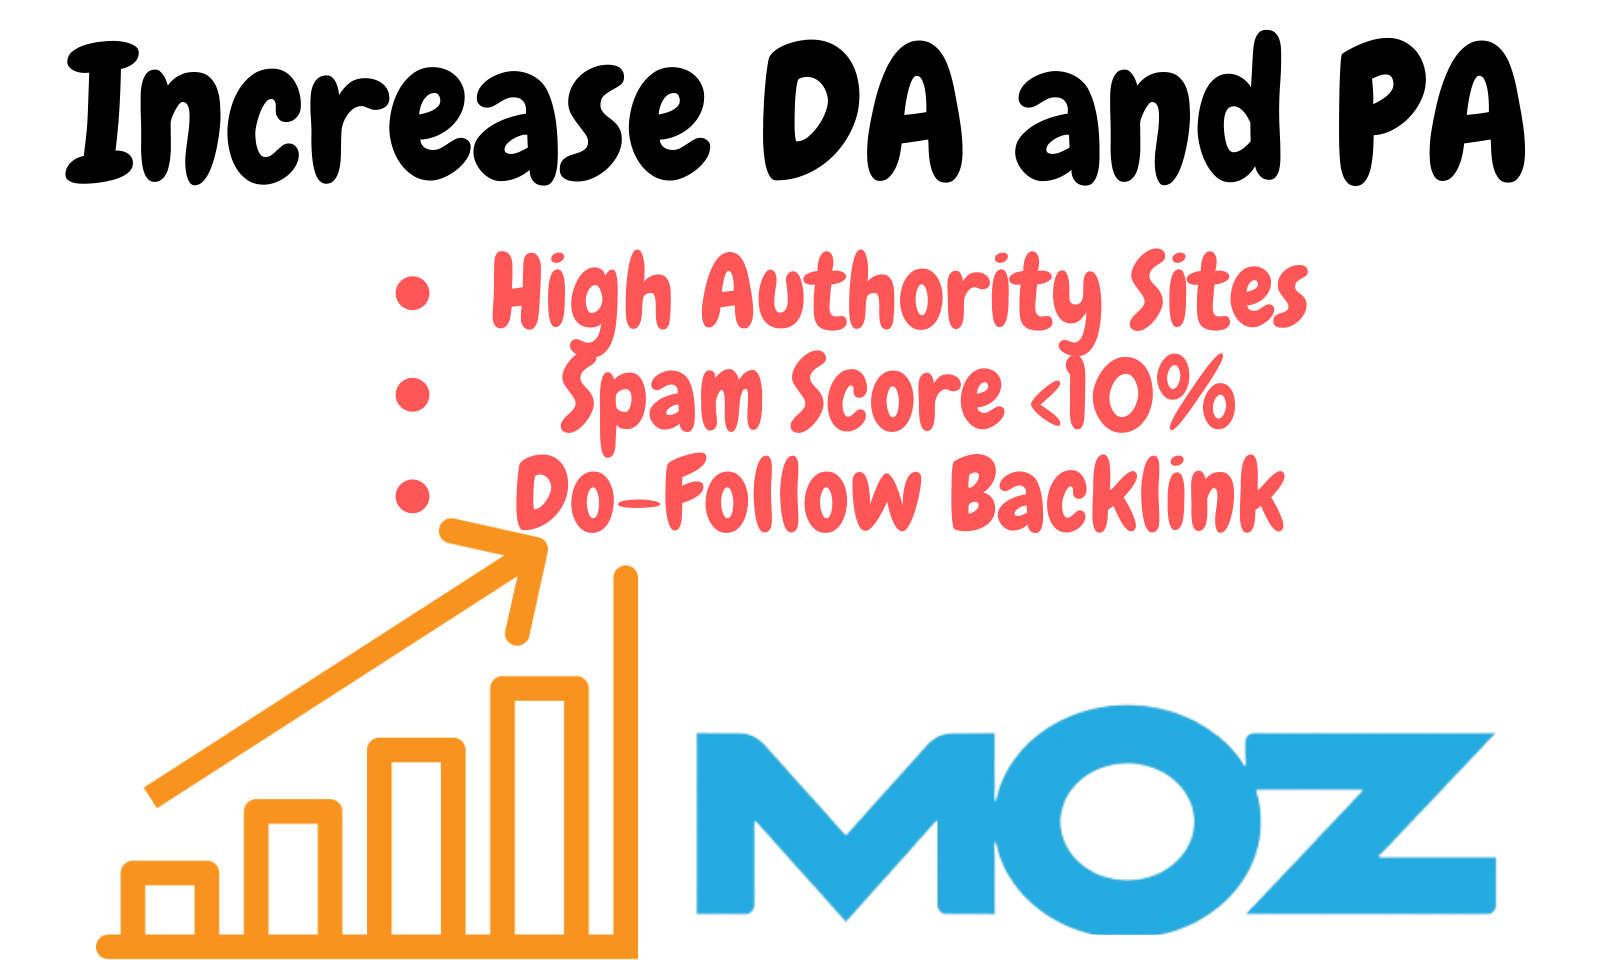 Increase MOZ DA (Domain Authority) PA (Page Authority) of your website with dofollow backlinks